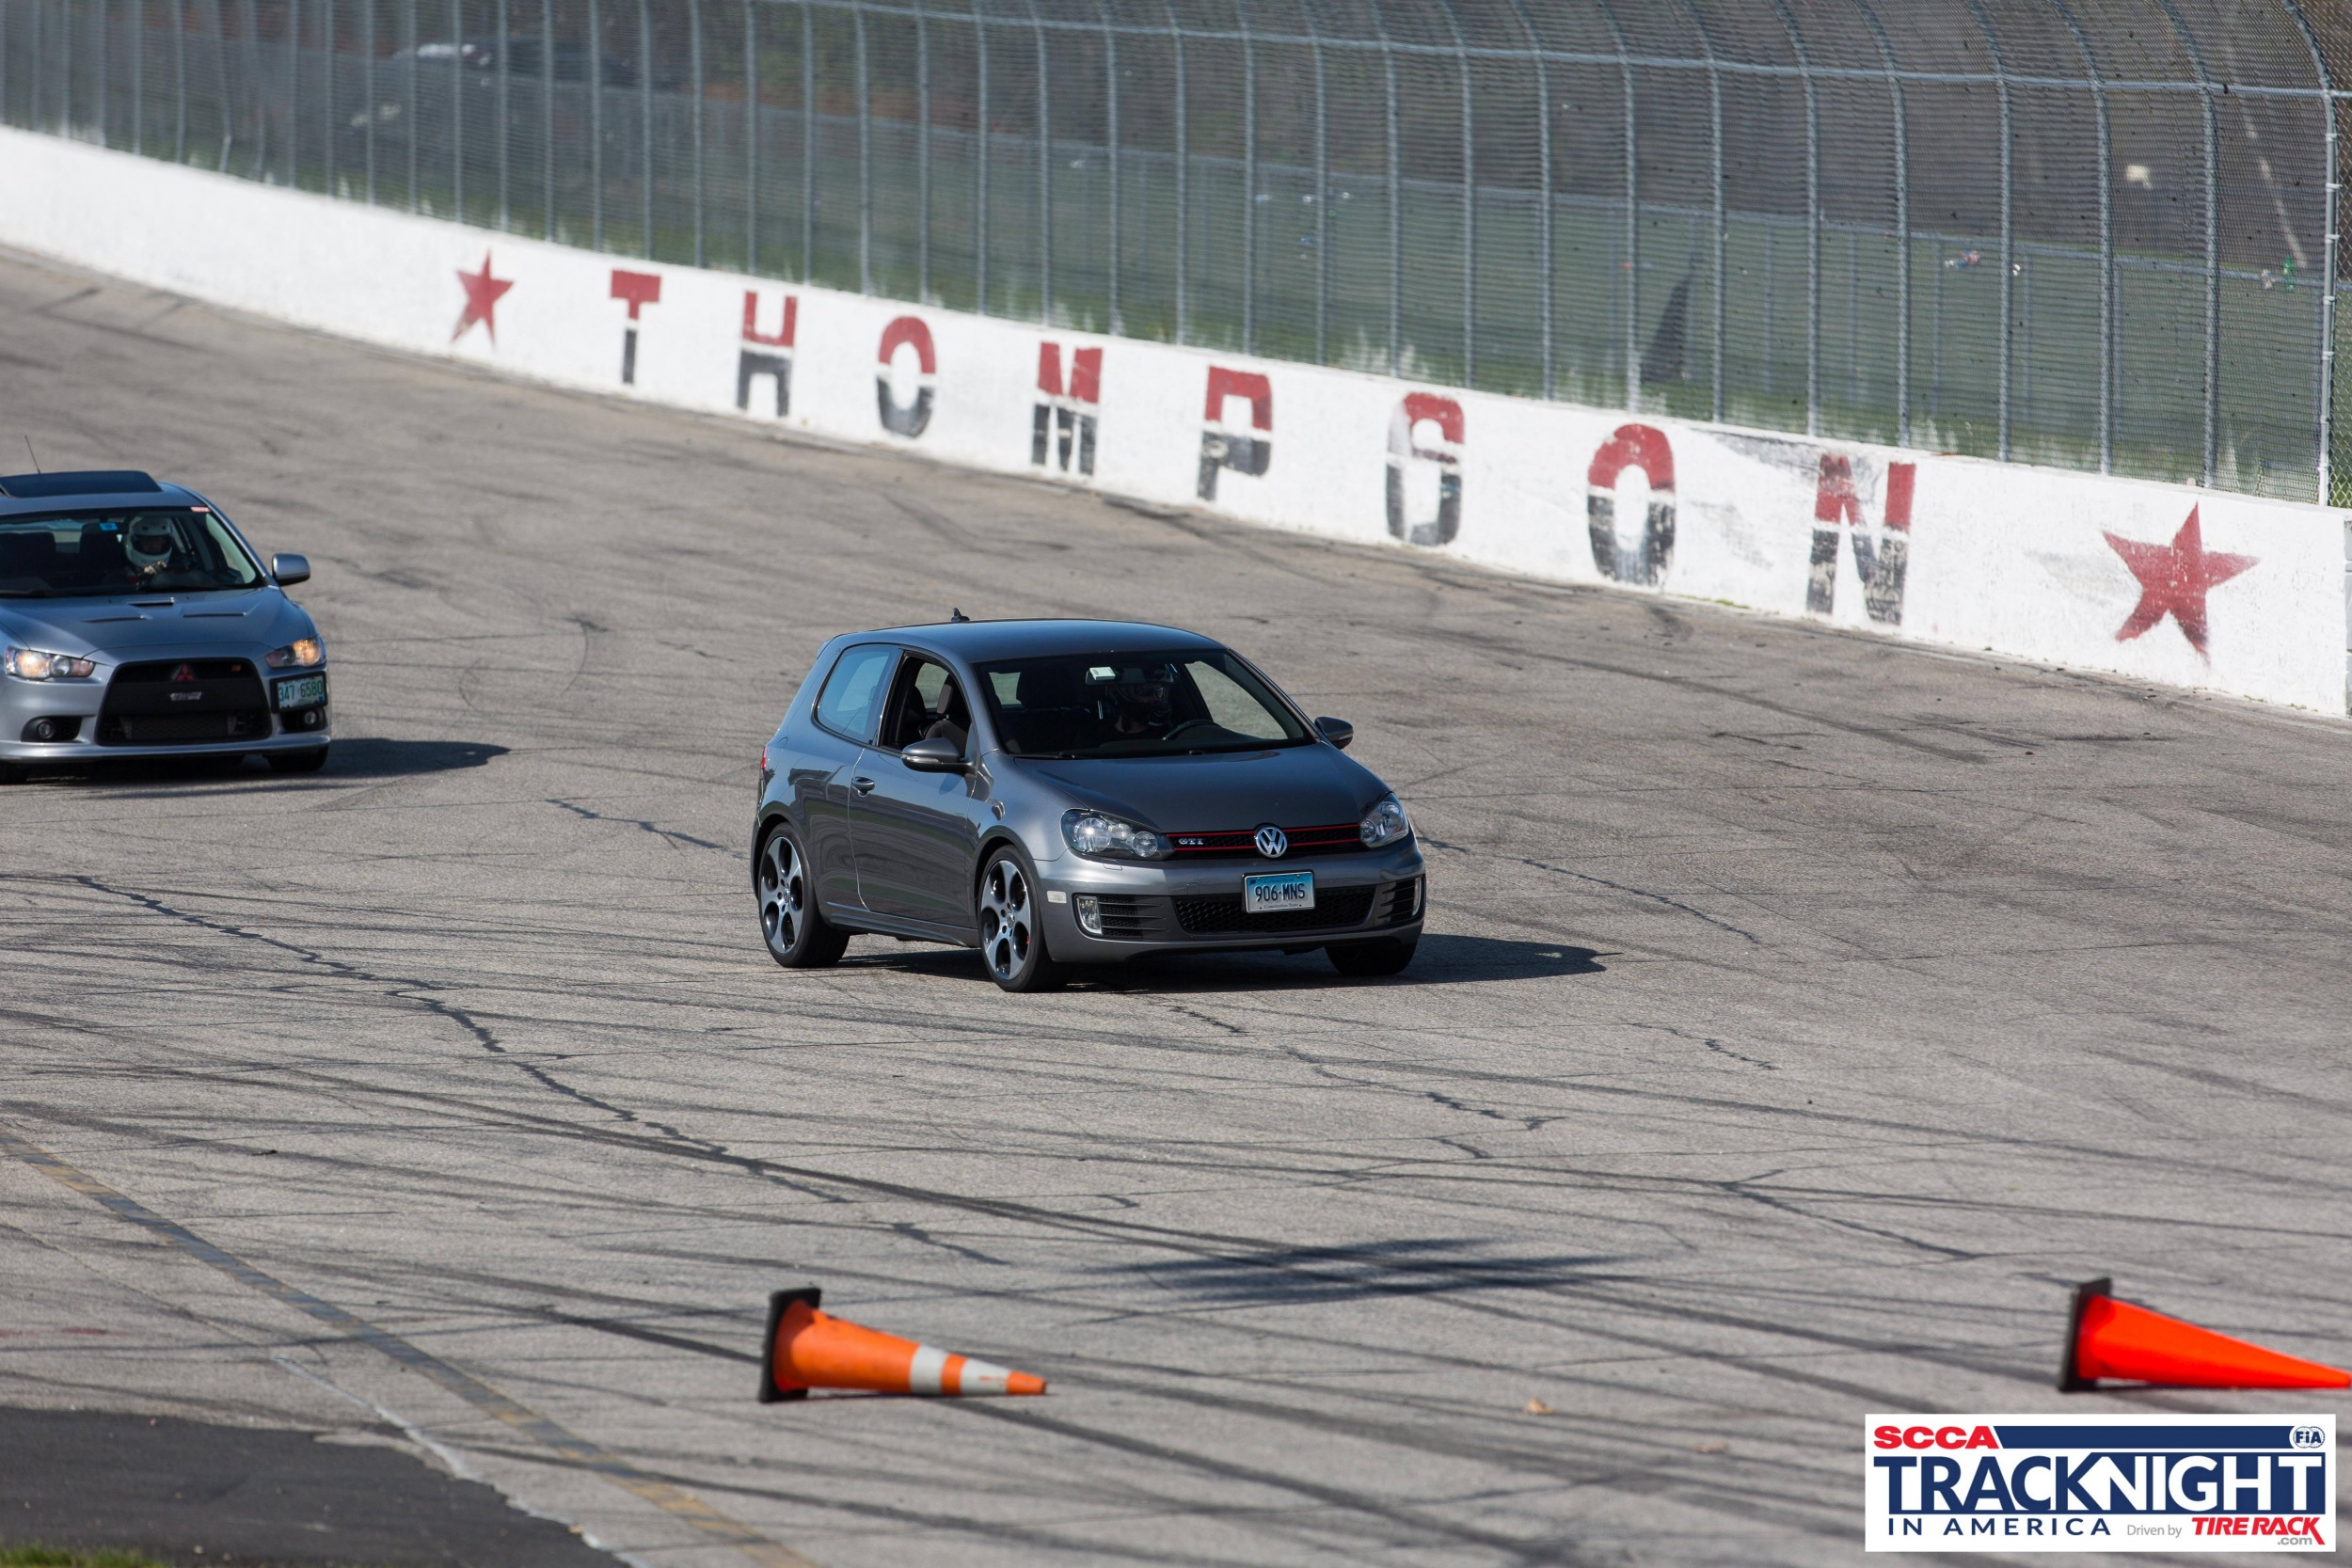 SCCA_Track_Night_In_America_TSMP_34434